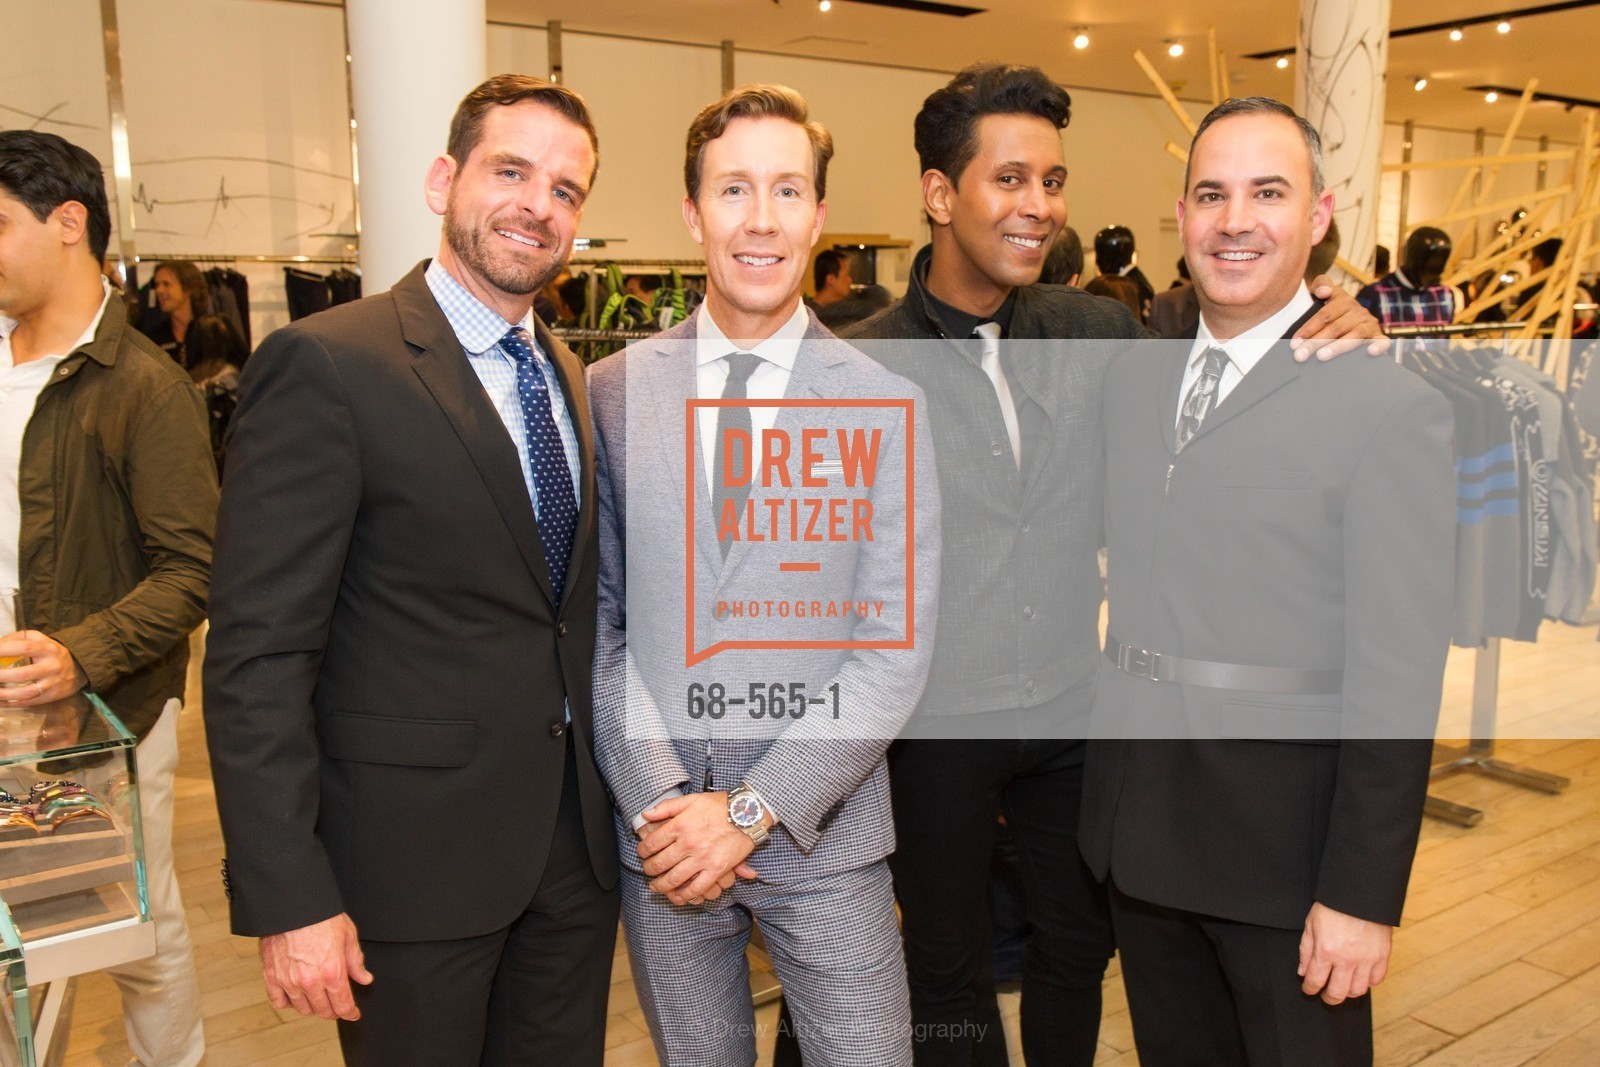 Ryan Williams, Eric Jennings, Emillio Mesa, Rober Arnold-Kraft, GLAAD GALA Kick-Off Party Hosted by SAKS FIFTH AVENUE, Saks Fifth Avenue. 384 Post Street, September 12th, 2014,Drew Altizer, Drew Altizer Photography, full-service agency, private events, San Francisco photographer, photographer california